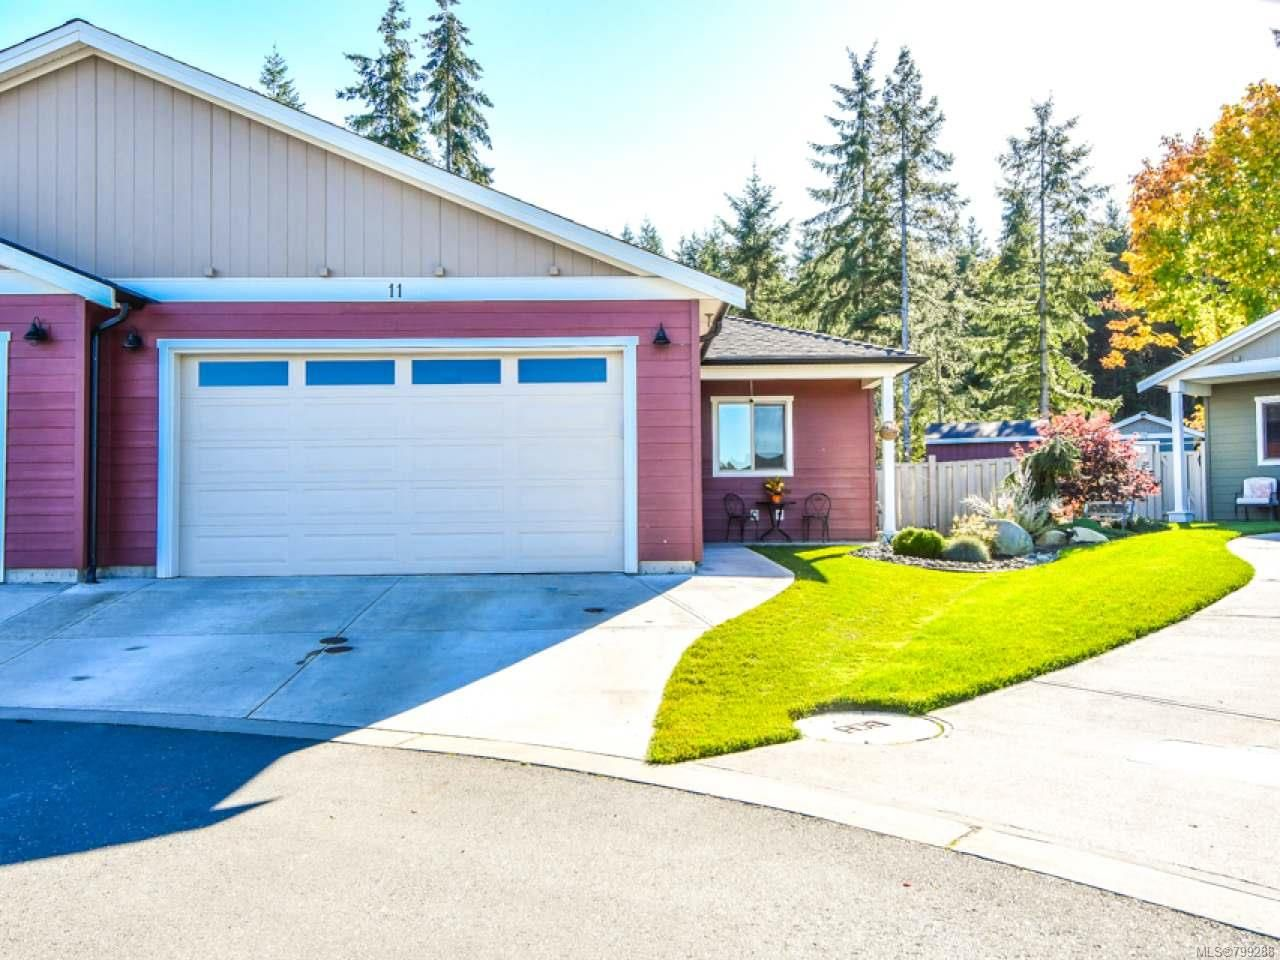 Photo 36: Photos: 11 301 Arizona Dr in CAMPBELL RIVER: CR Willow Point Half Duplex for sale (Campbell River)  : MLS®# 799288